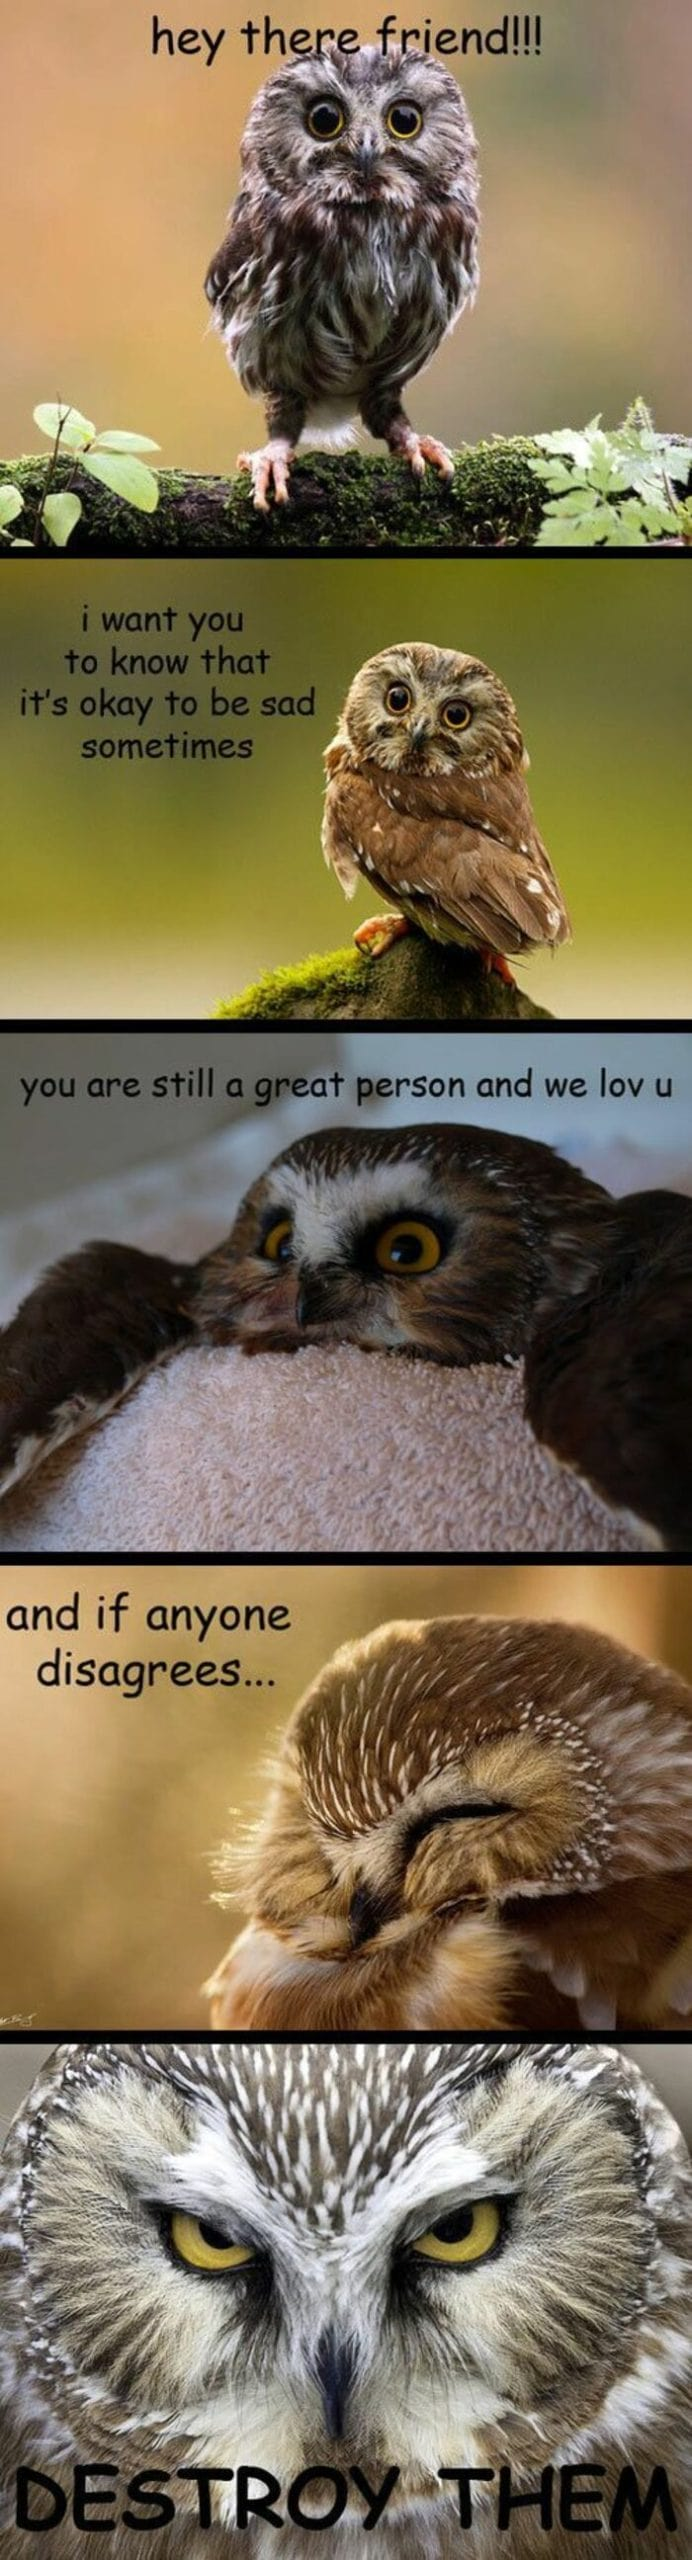 Owl Memes - Hey there friend! I want you to know that it is OK to be sad sometimes, you are still a great person and we love you and if anyone disagrees, destroy them